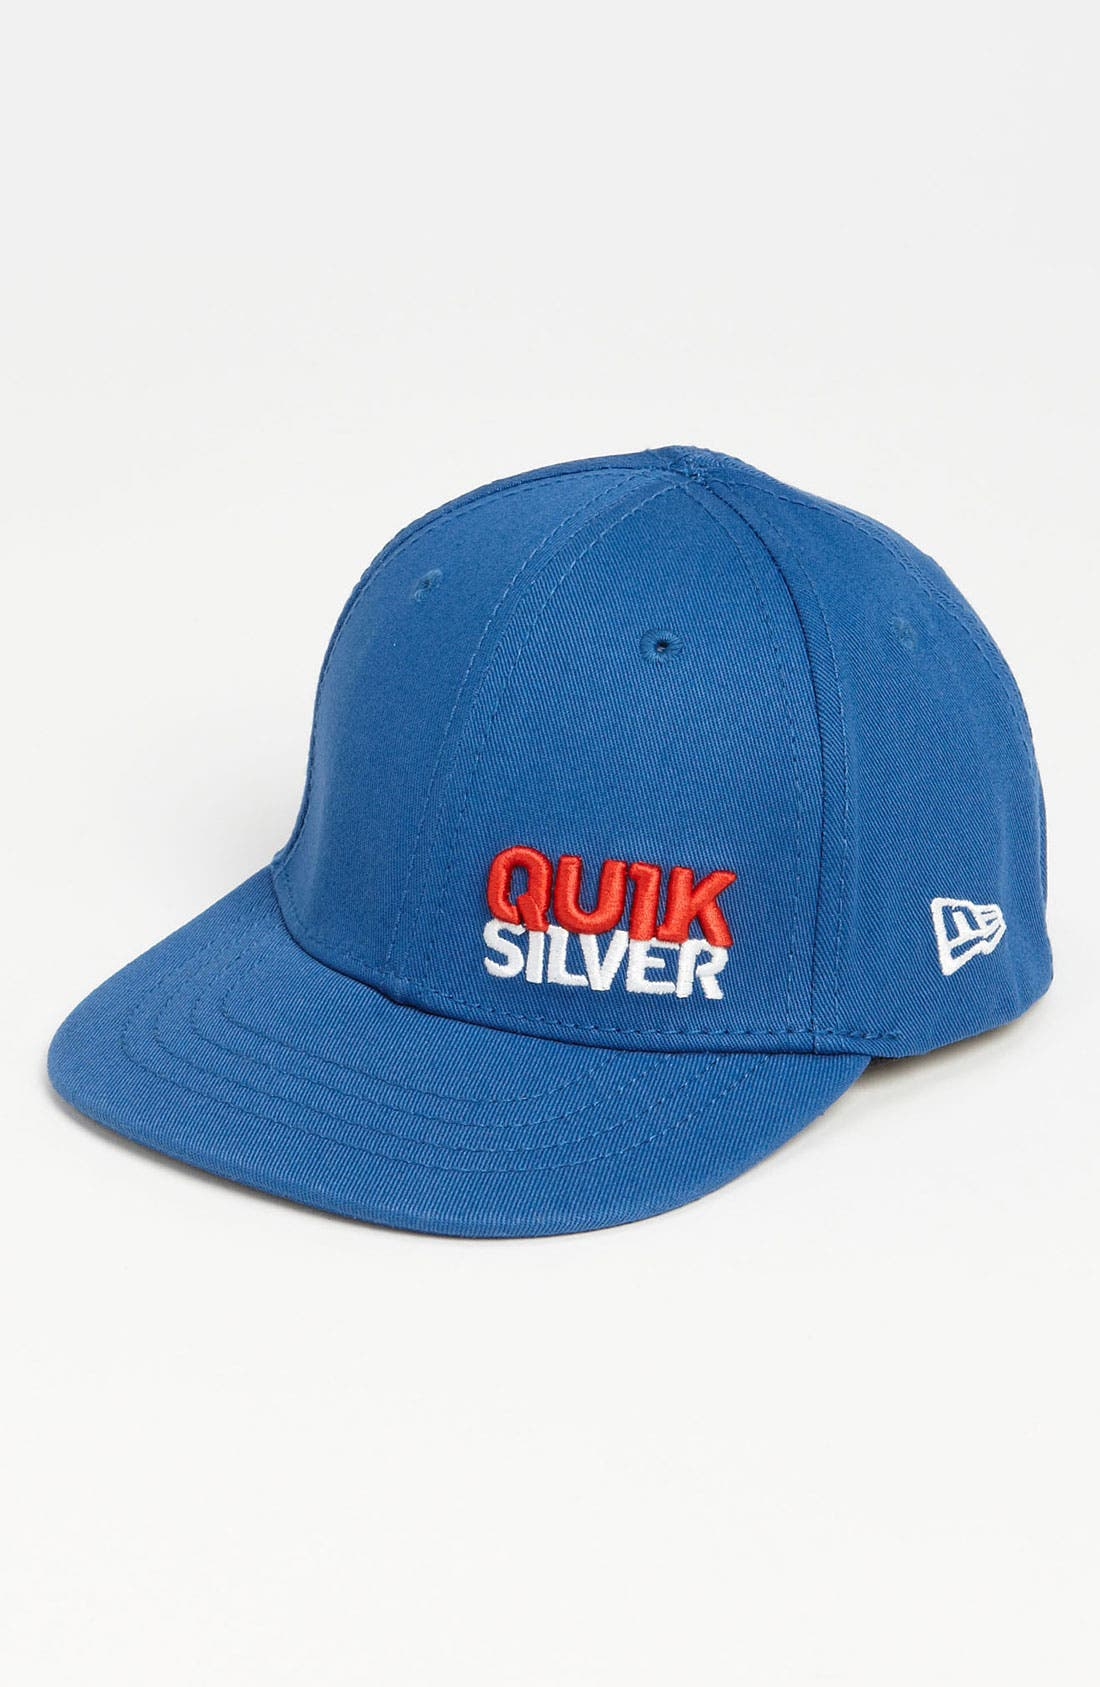 Main Image - Quiksilver 'Strands' Baseball Cap (Toddler)